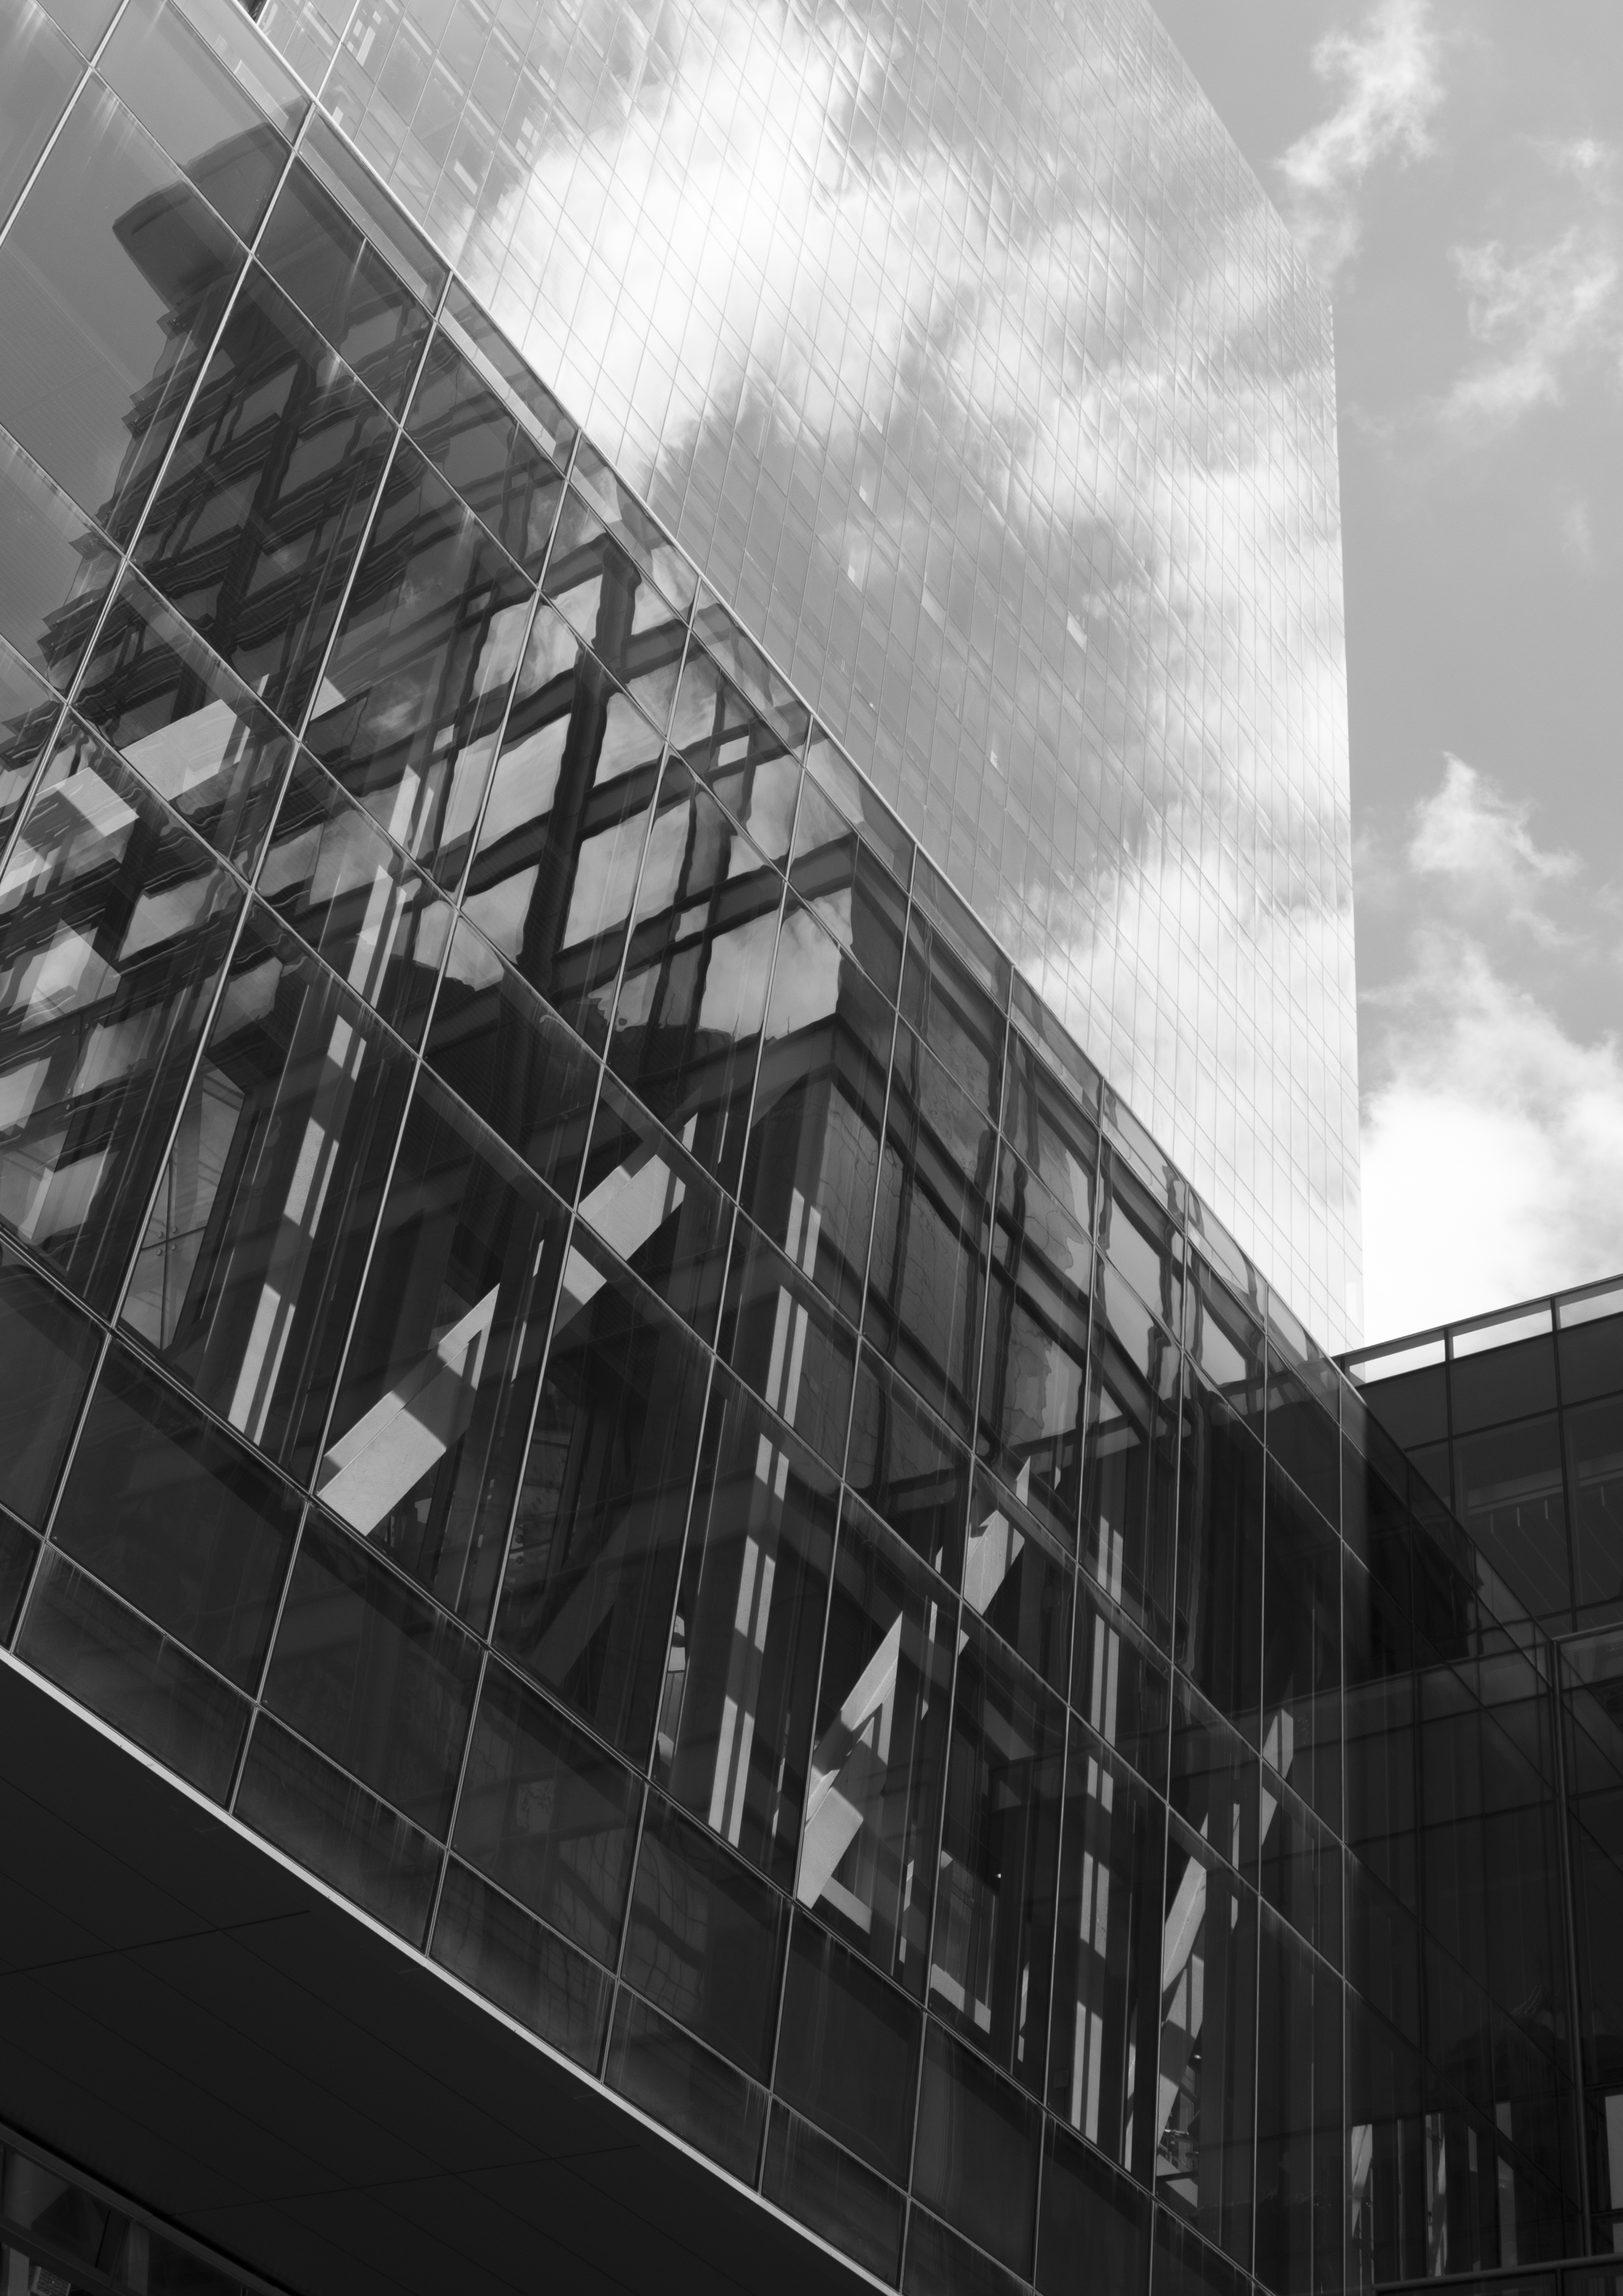 Remember to Look Up Now and Again - Photography taken in downtown Charlotte, NC.